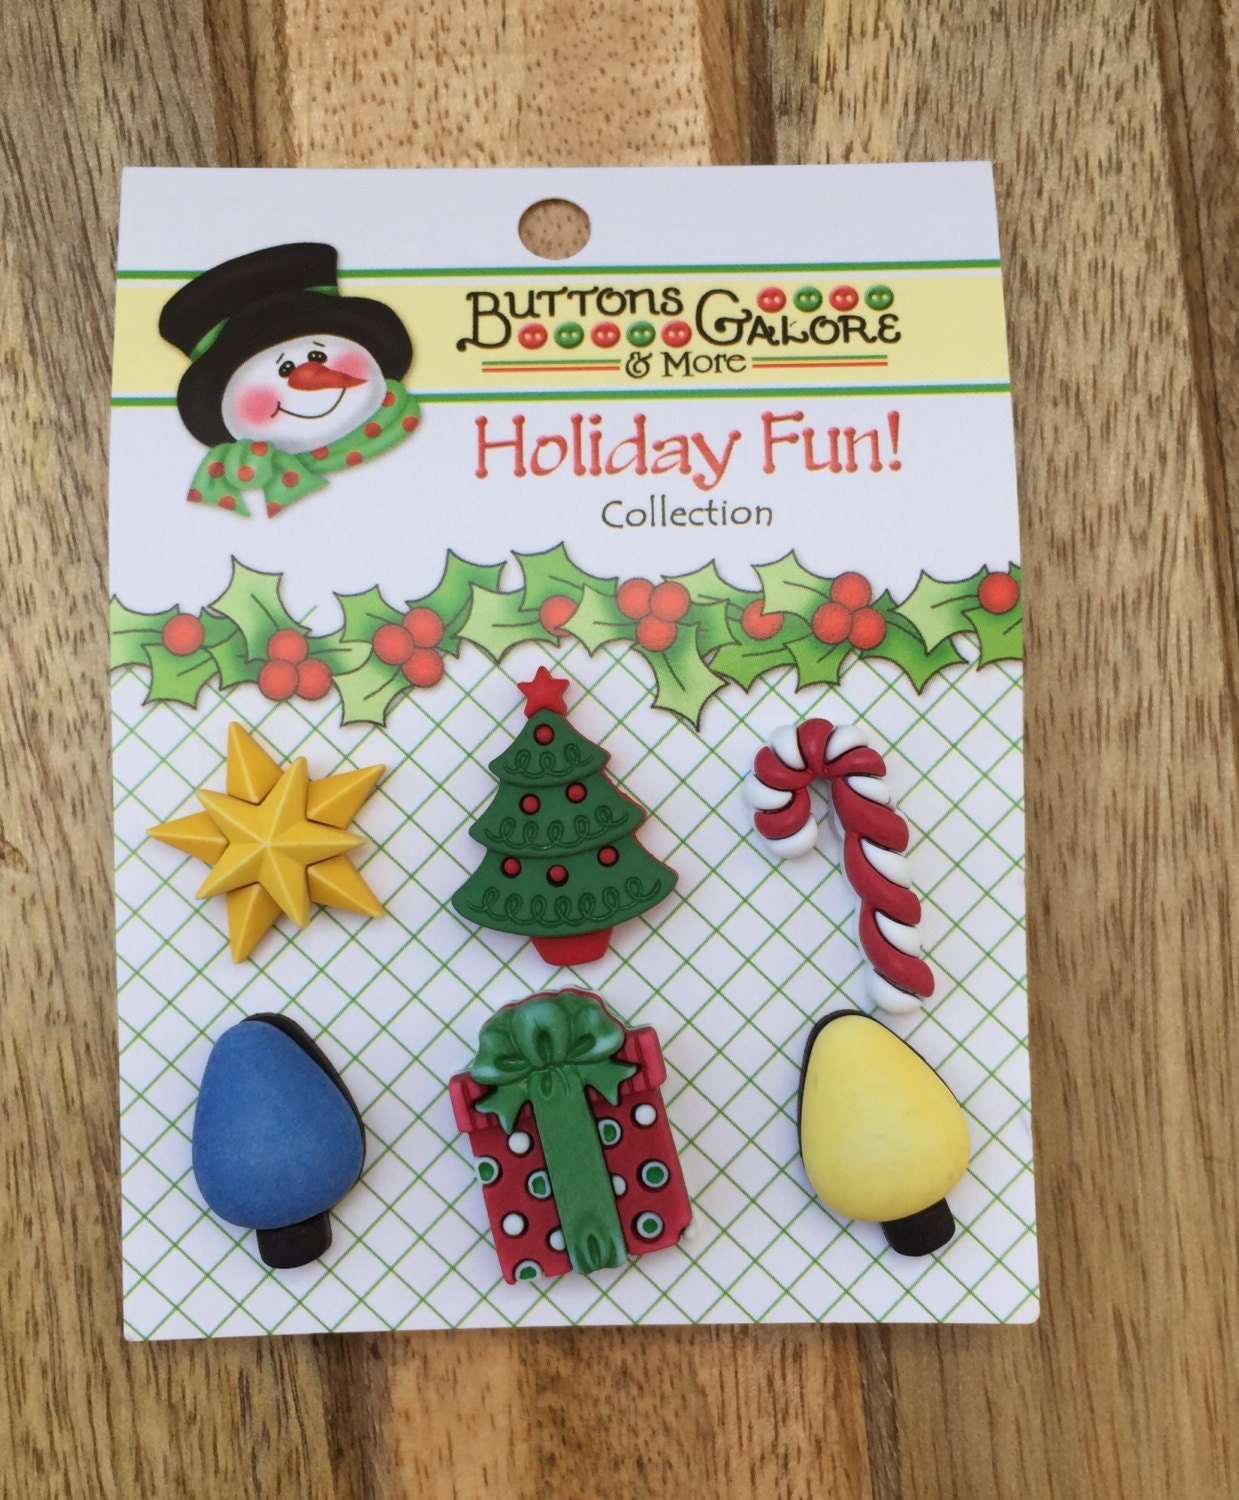 holiday buttons christmas tree star candy lights present novelty buttons by buttons galore good tidings holiday fun collection